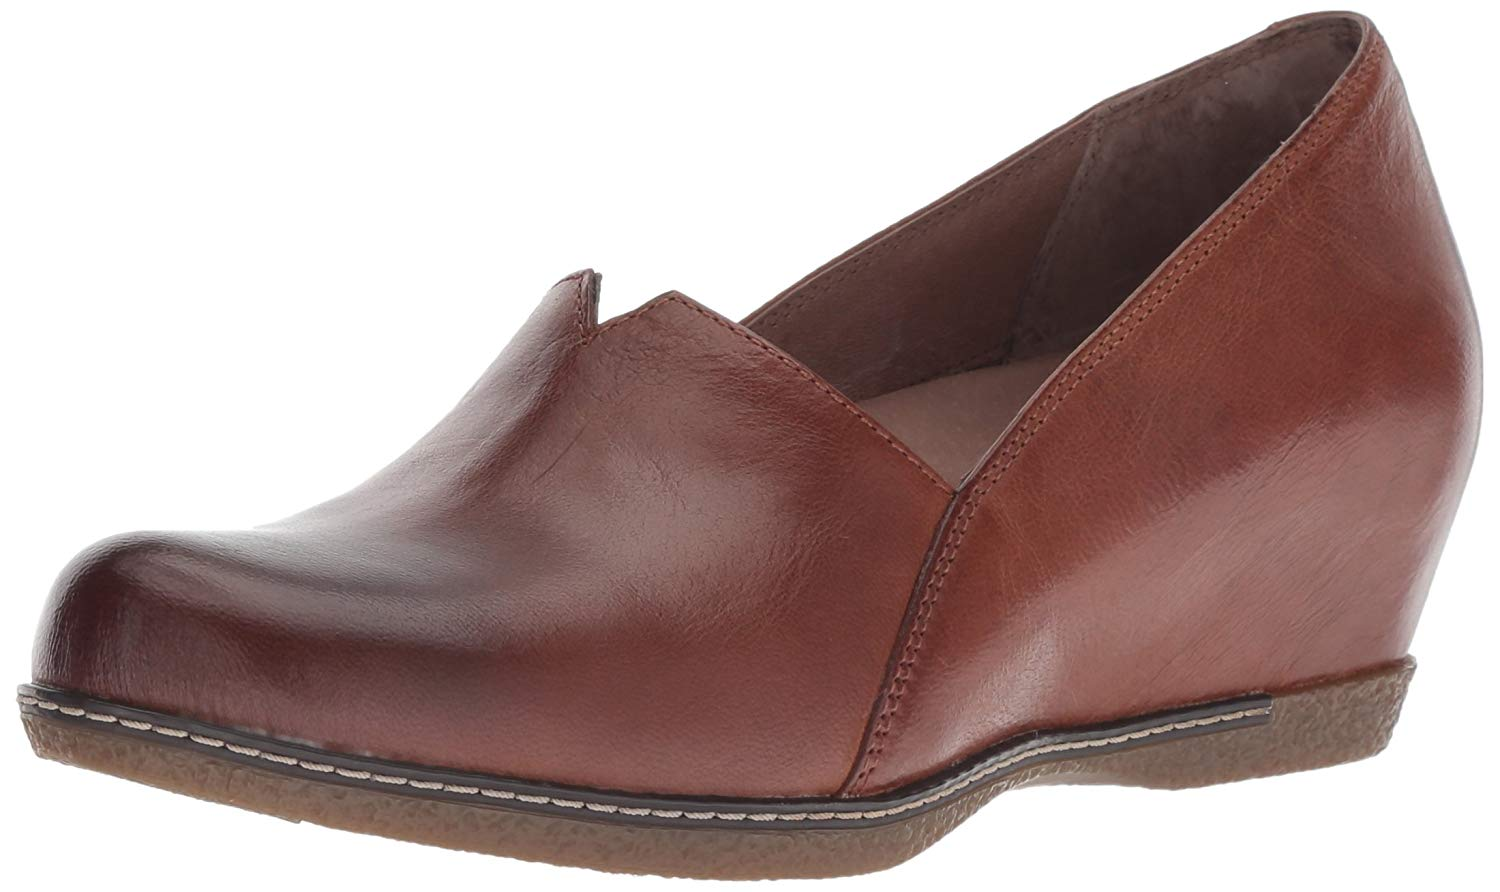 Dansko Womens Liliana Burnished Nubuck Leather Cap Toe Wedge